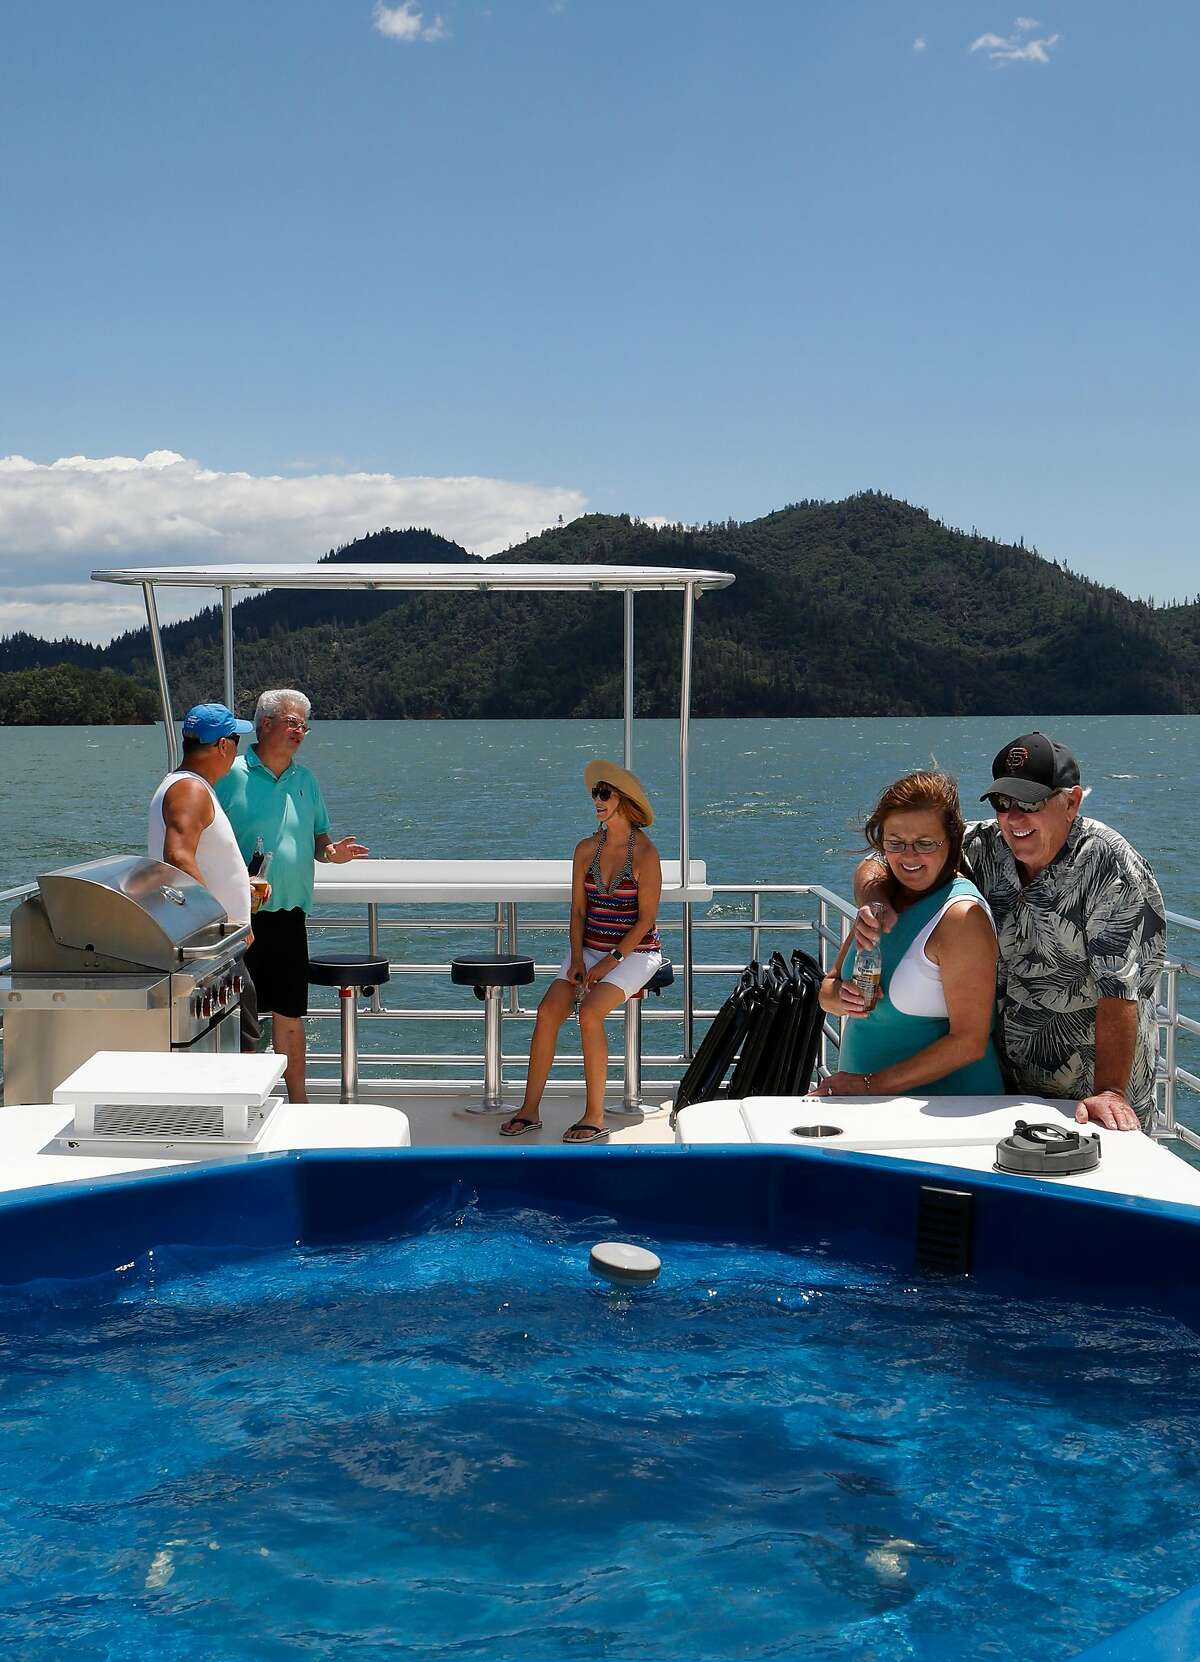 ( l to r) Dave Patters, Brad Castillo, Joan Patters and Anna and John Harkrader, on their houseboat rental during a weekend trip on Shasta Lake, Ca., as seen on Friday May 31, 2019.